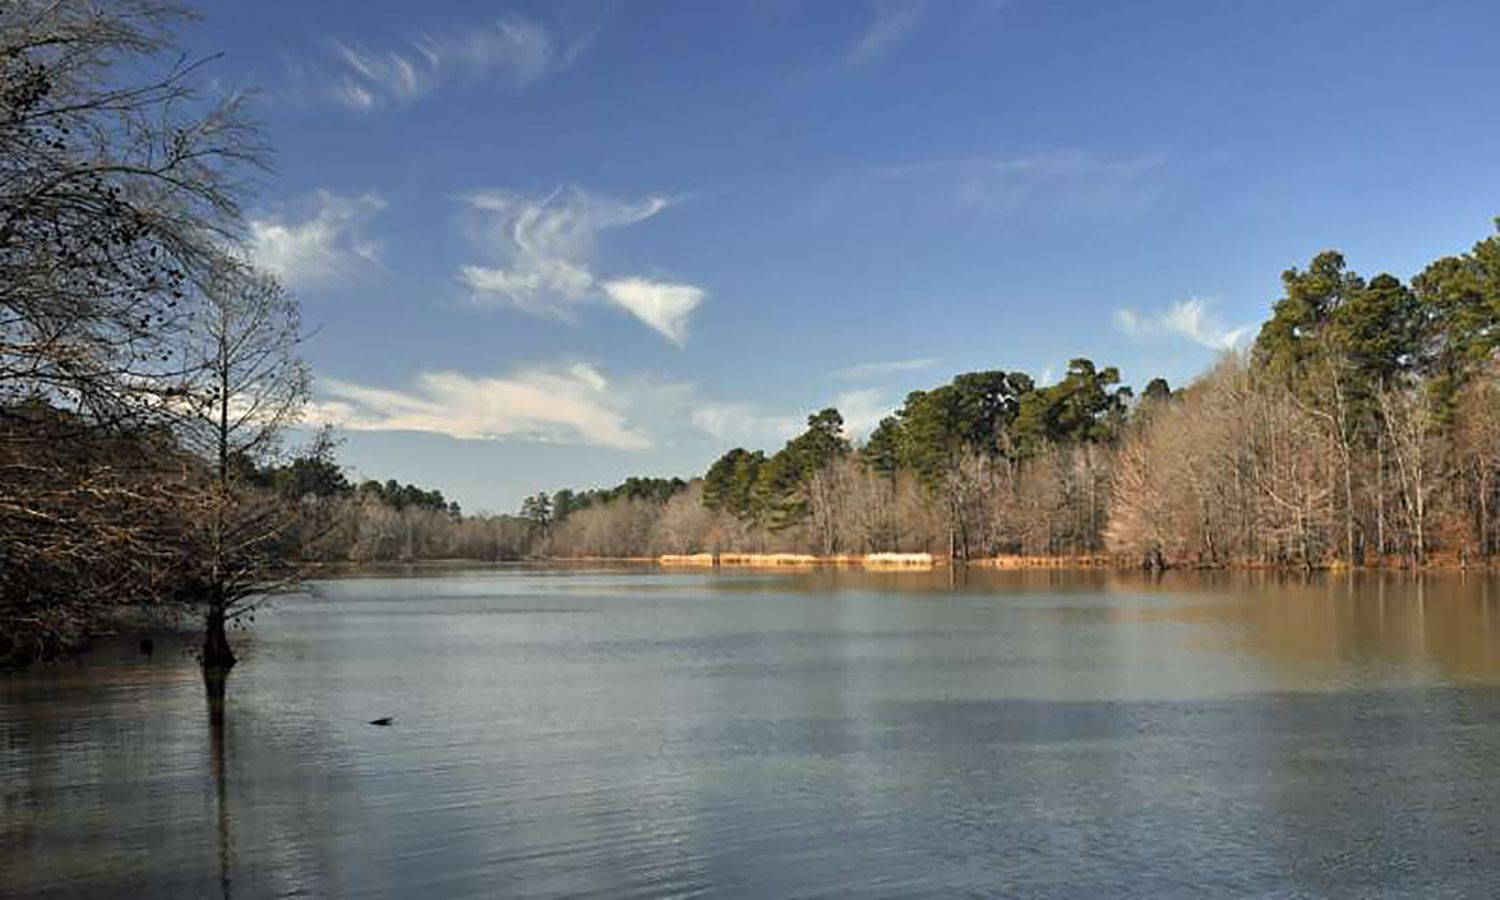 Best Camping Areas in Arkansas to Enjoy Nature